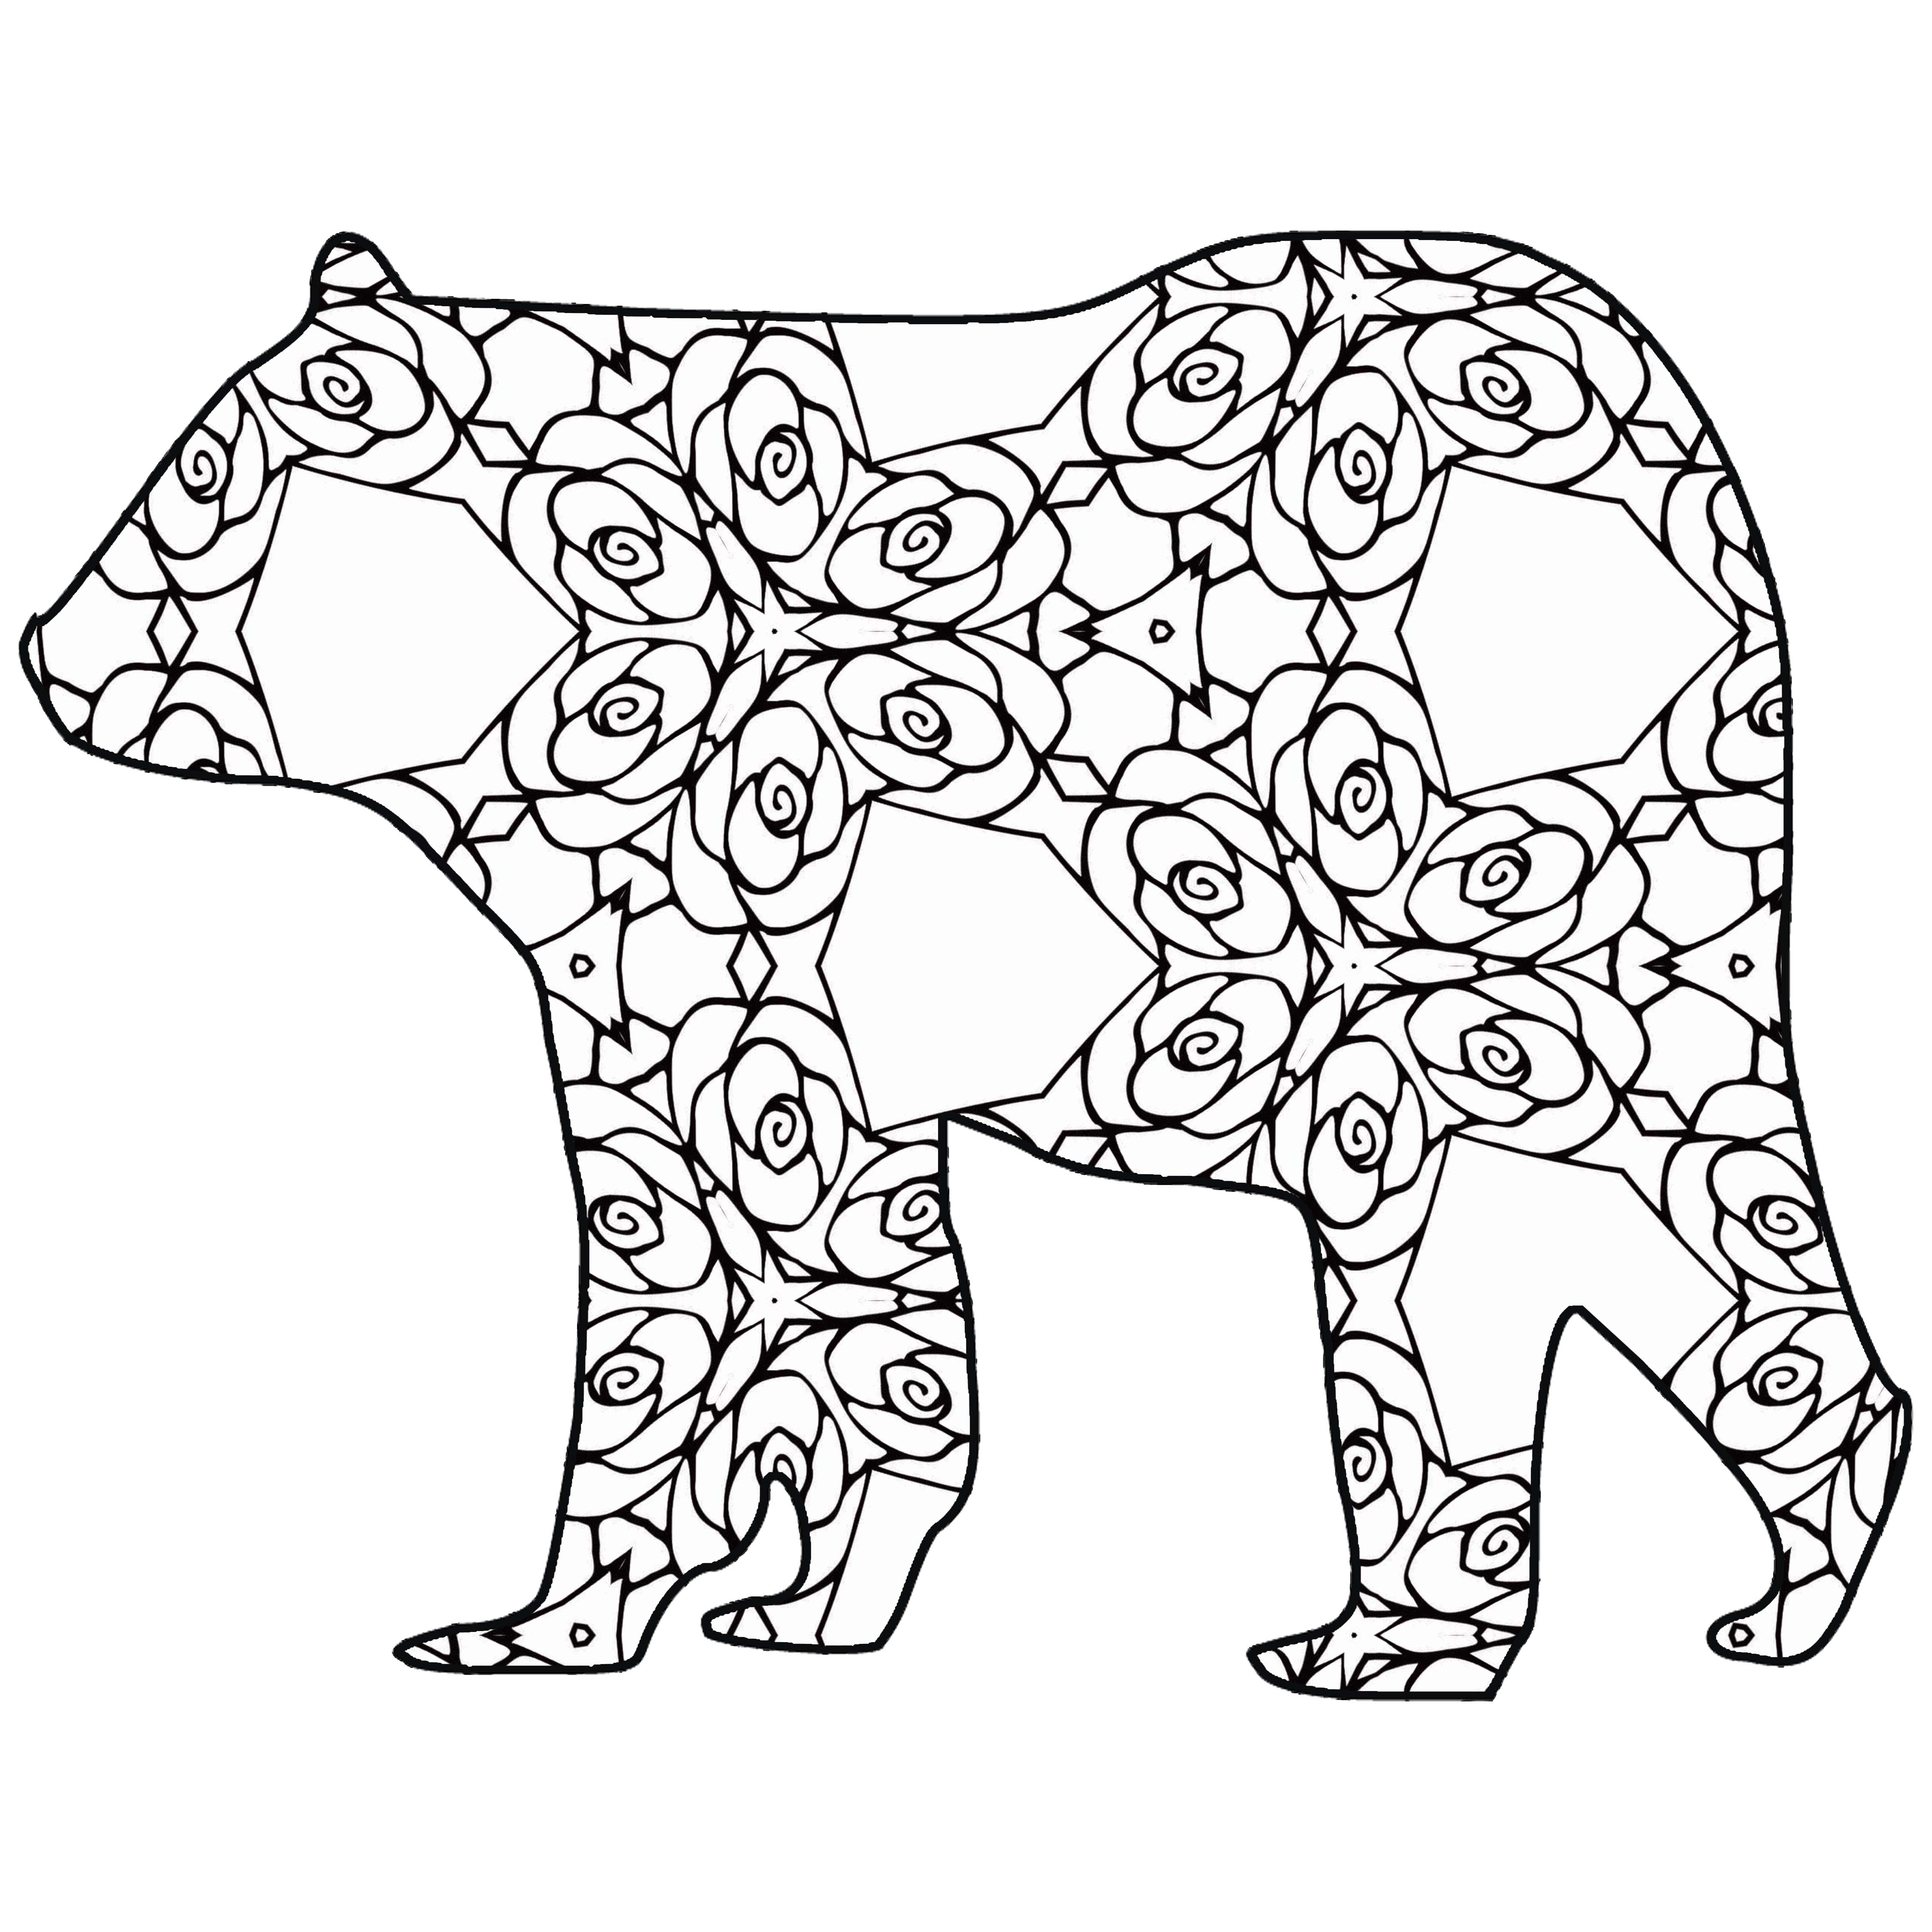 Animal Classification Coloring Pages Coloring Pages